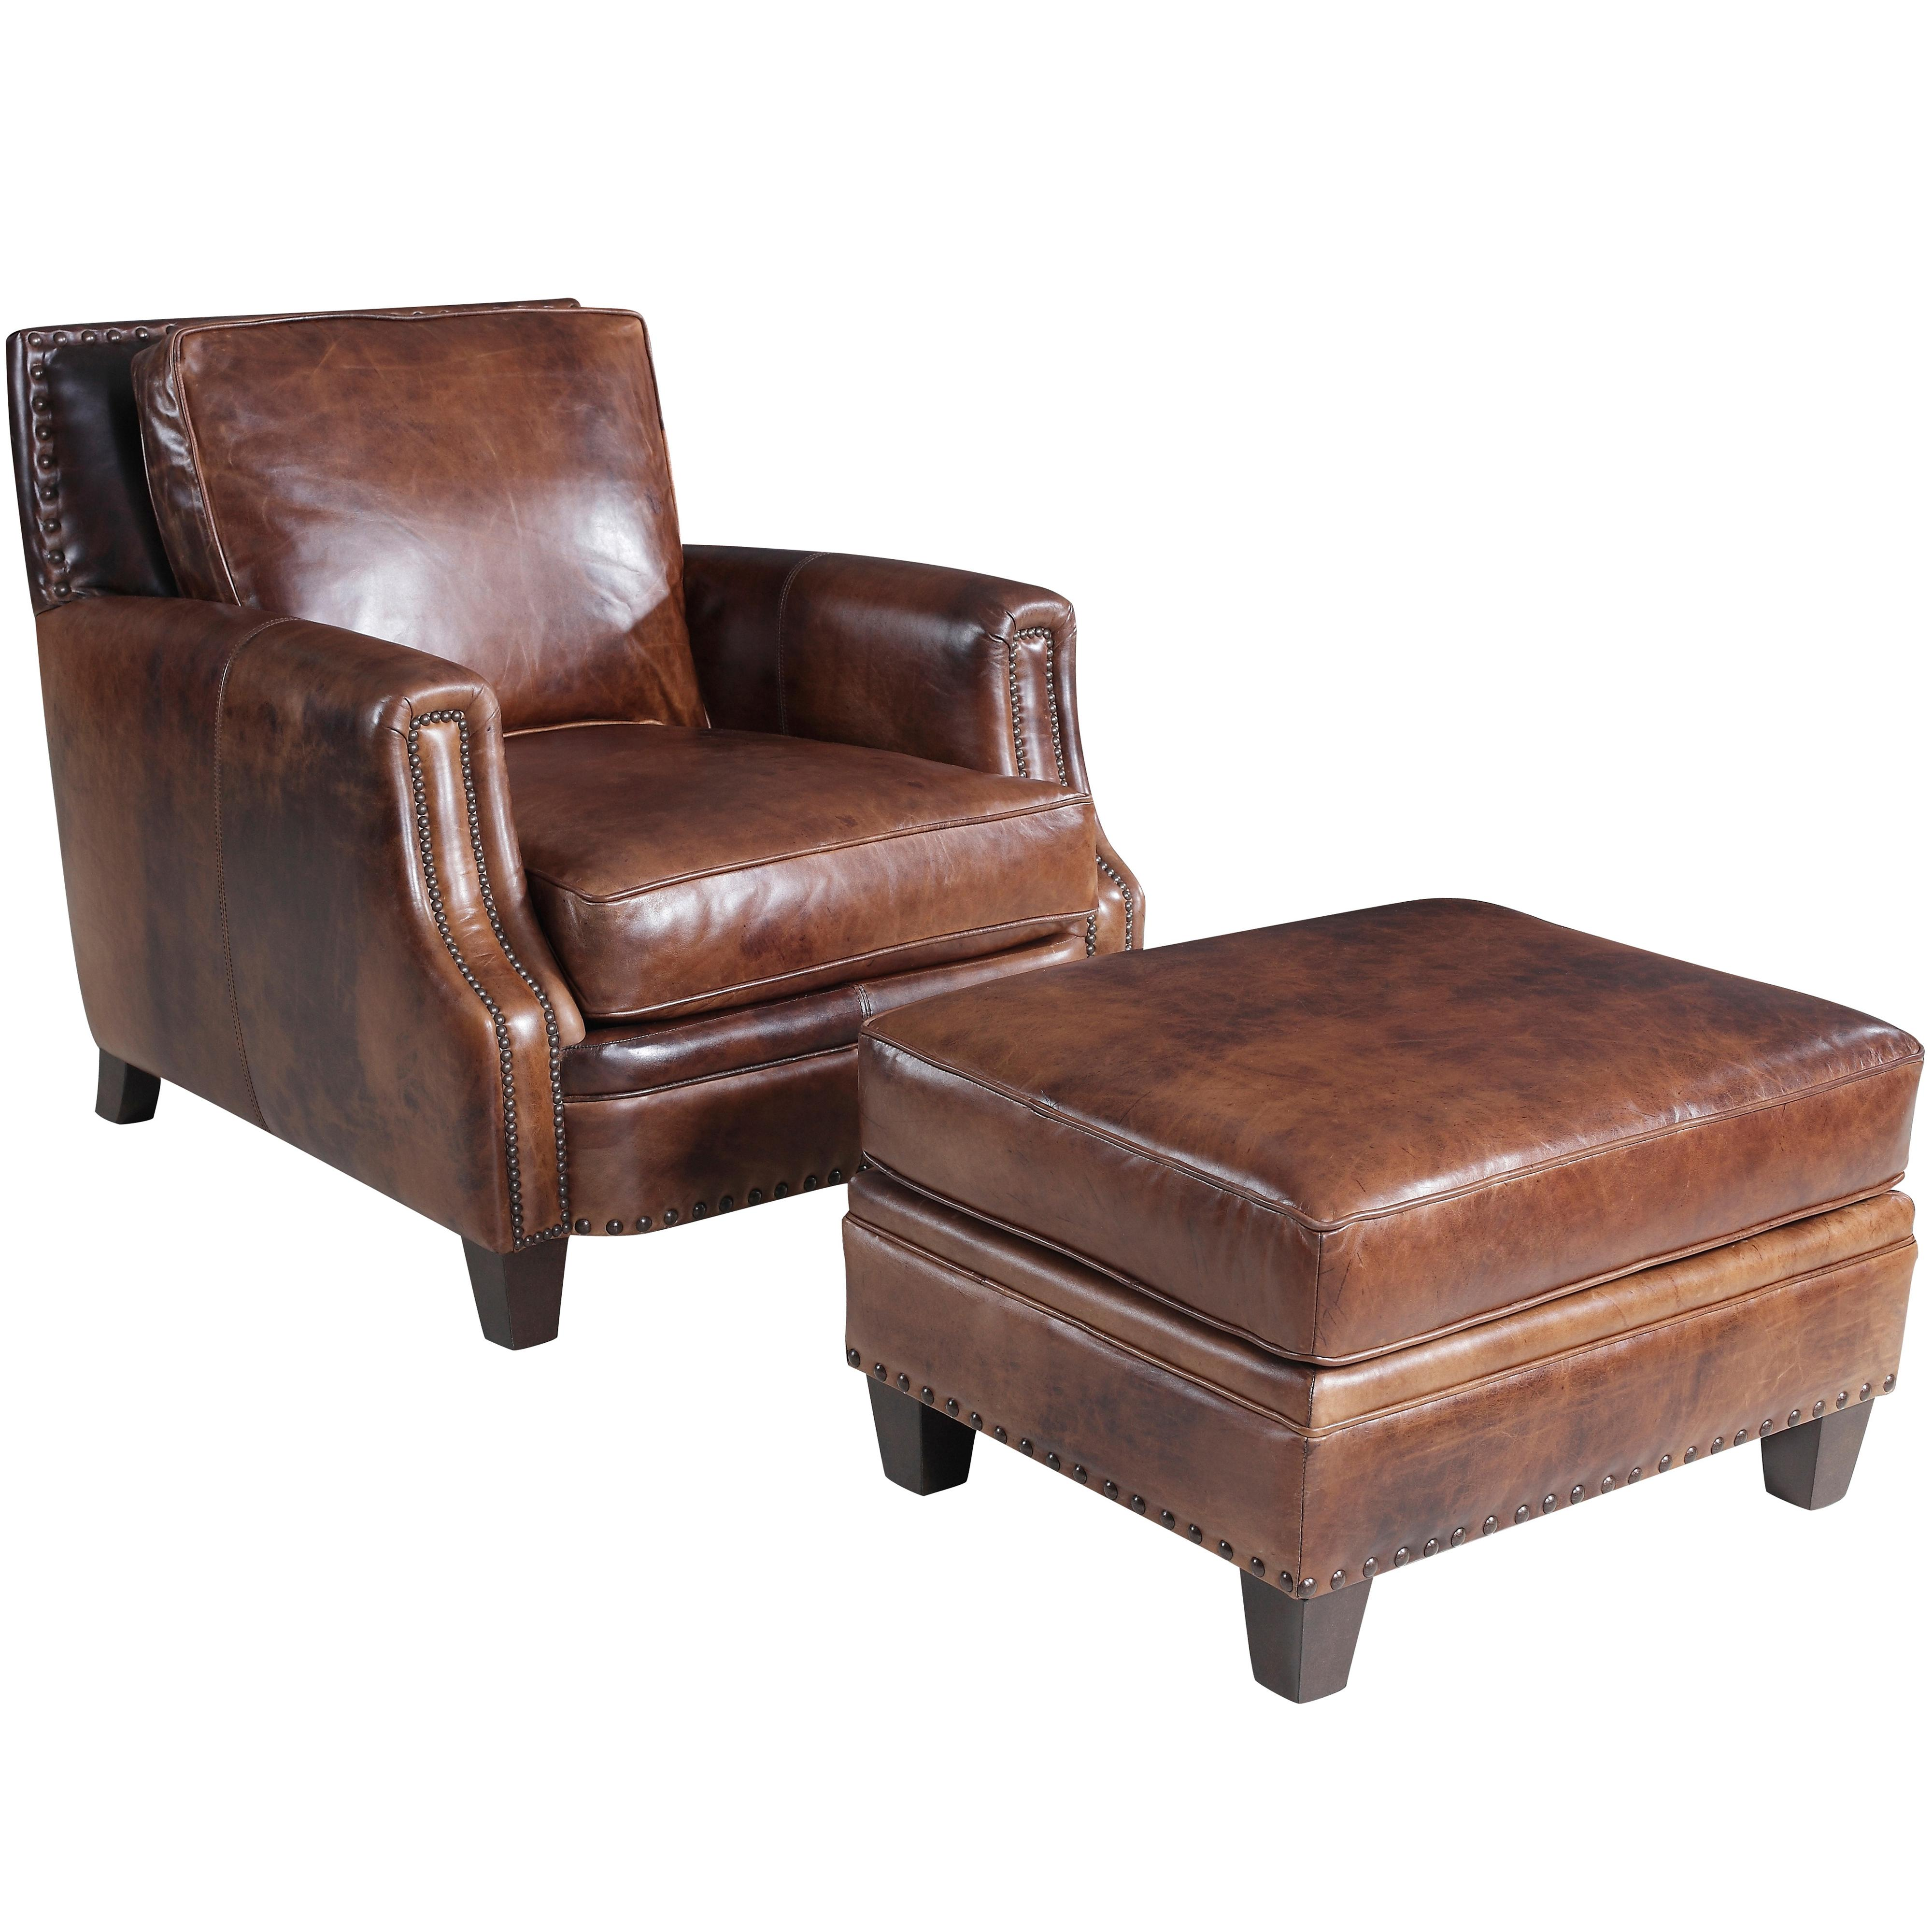 Hooker Furniture SS311 Traditional Chair And Ottoman - Item Number: SS3311-01-085+OT-085